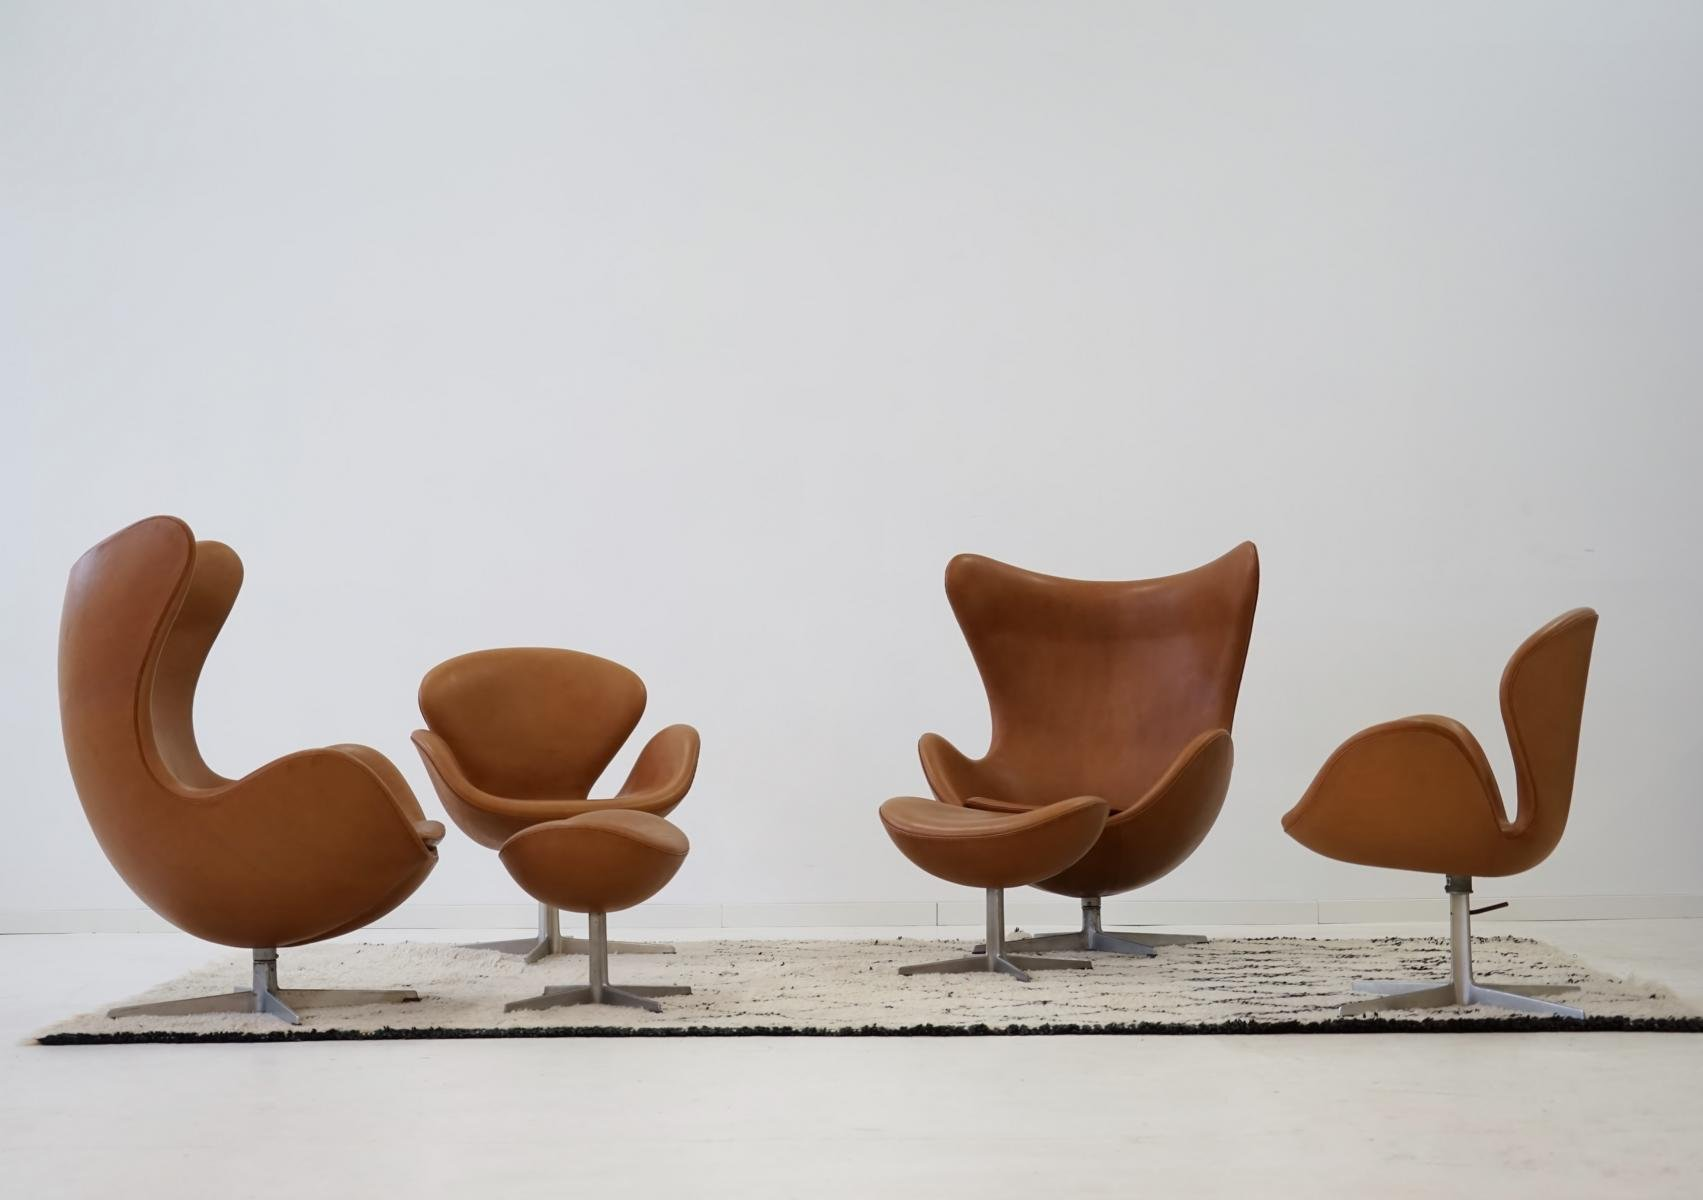 Egg Chair Leder Lounge Stoel Egg Chair Kasjmier Koffie